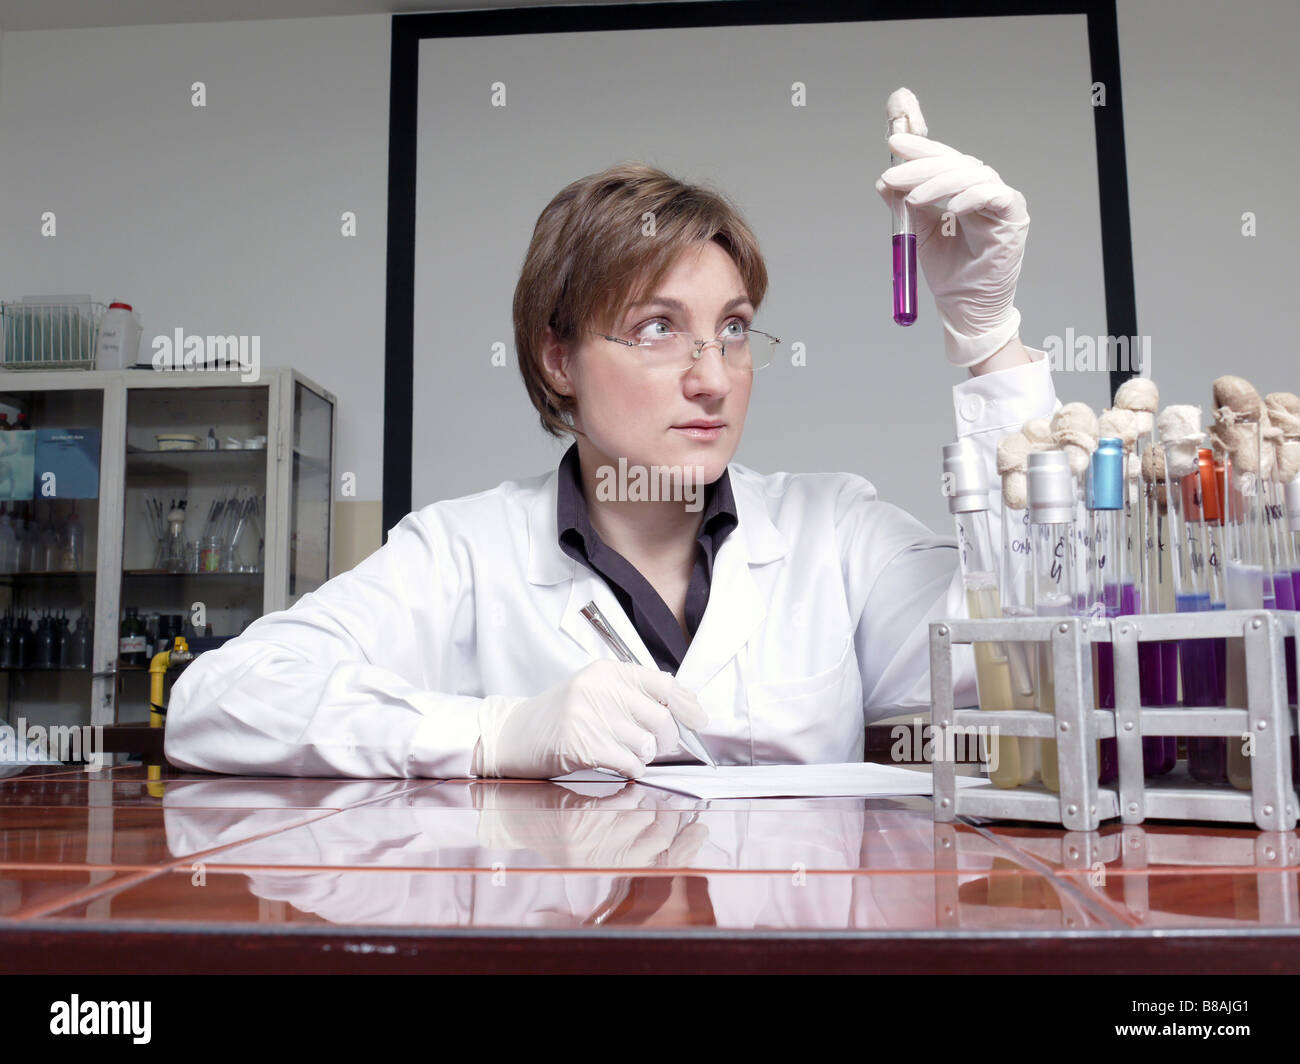 Female laboratory technician sitting behind laboratory desk looking at specimen taking observation notes - Stock Image